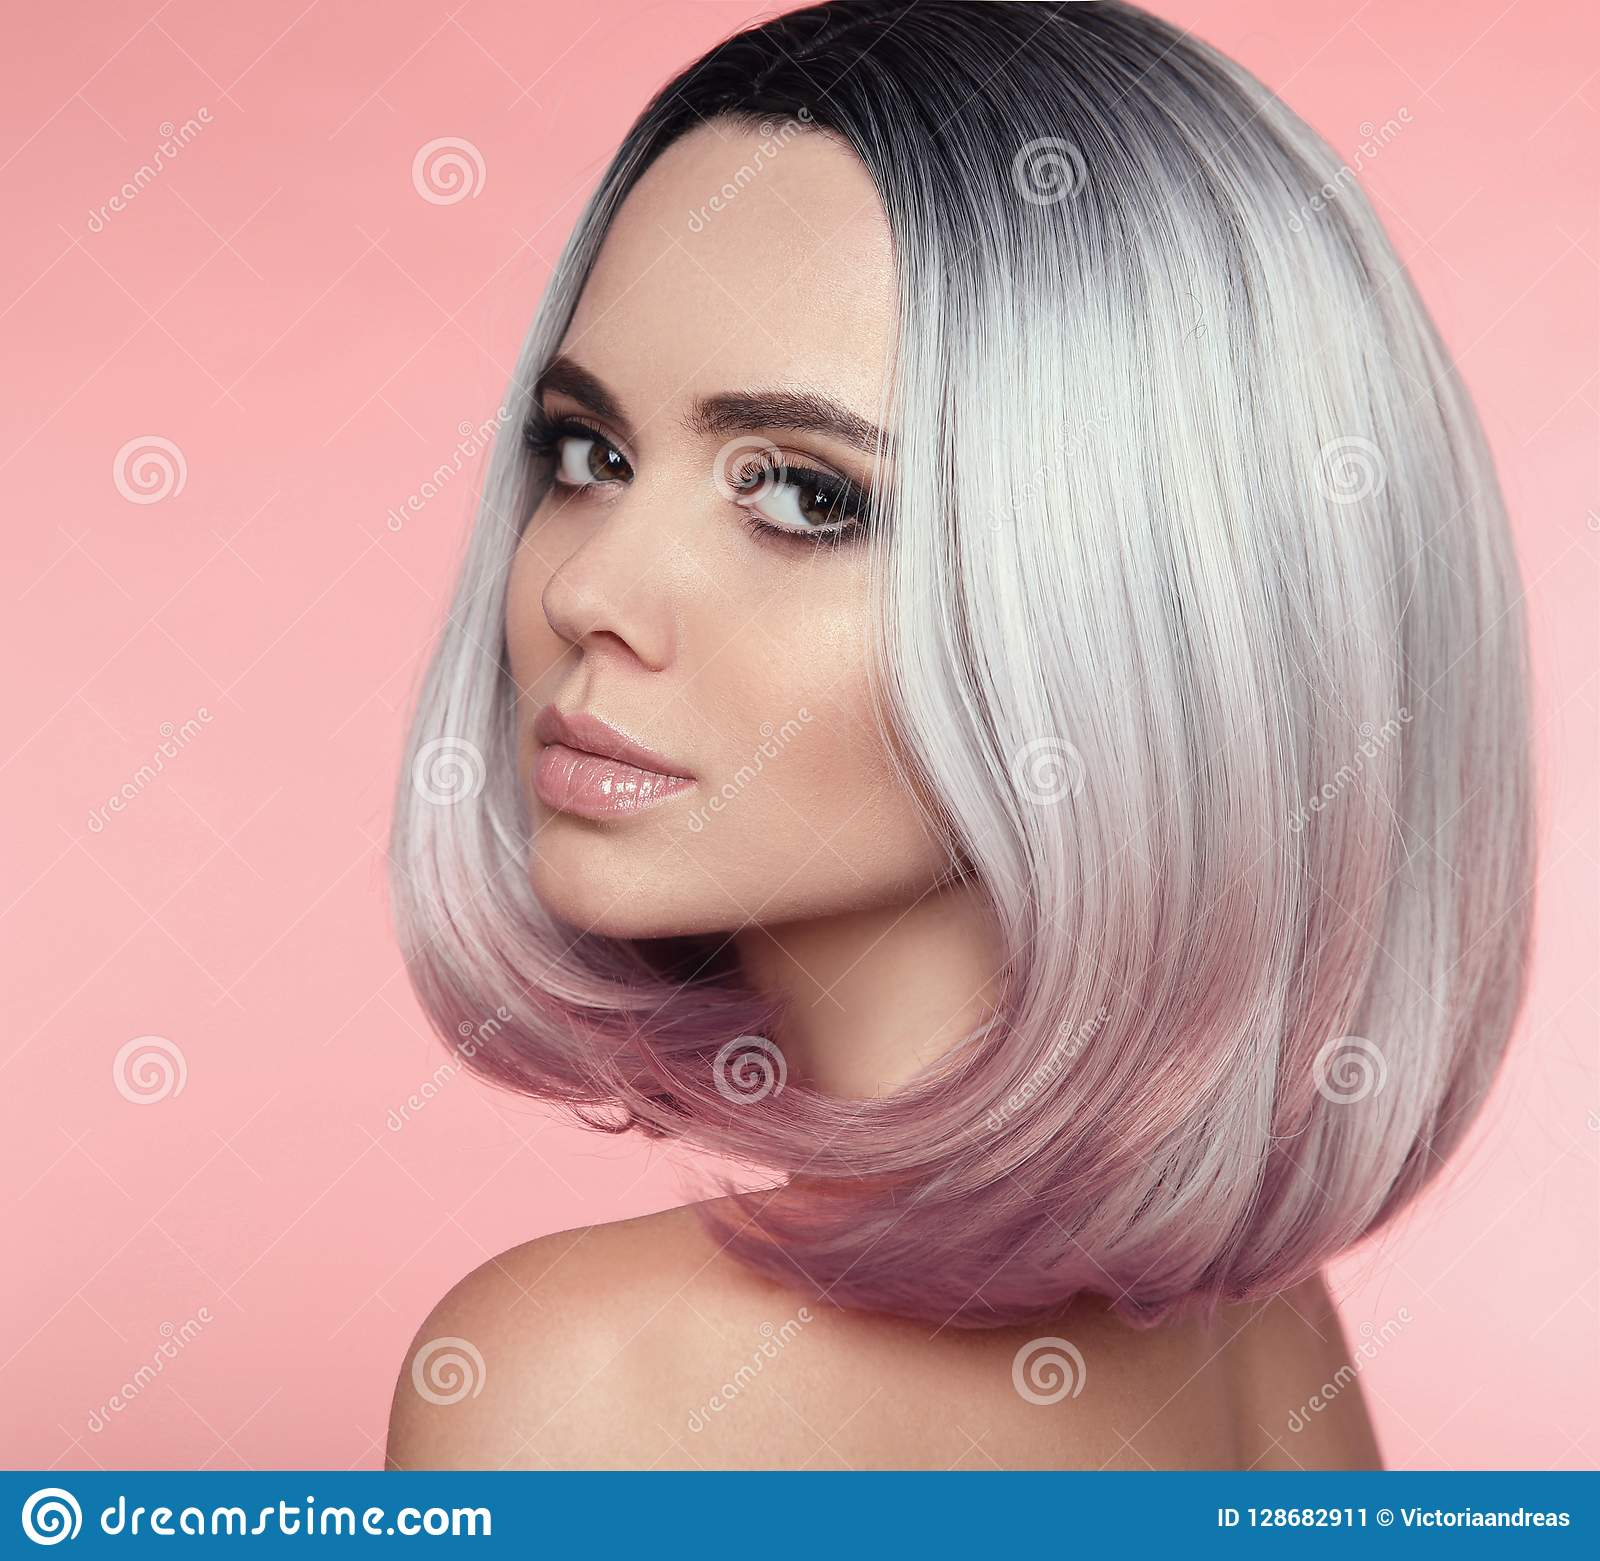 Girl Portrait Of Ombre Bob Short Hairstyle. Beautiful Hair Color Stock  Image - Image of extensions, hairdressing: 128682911